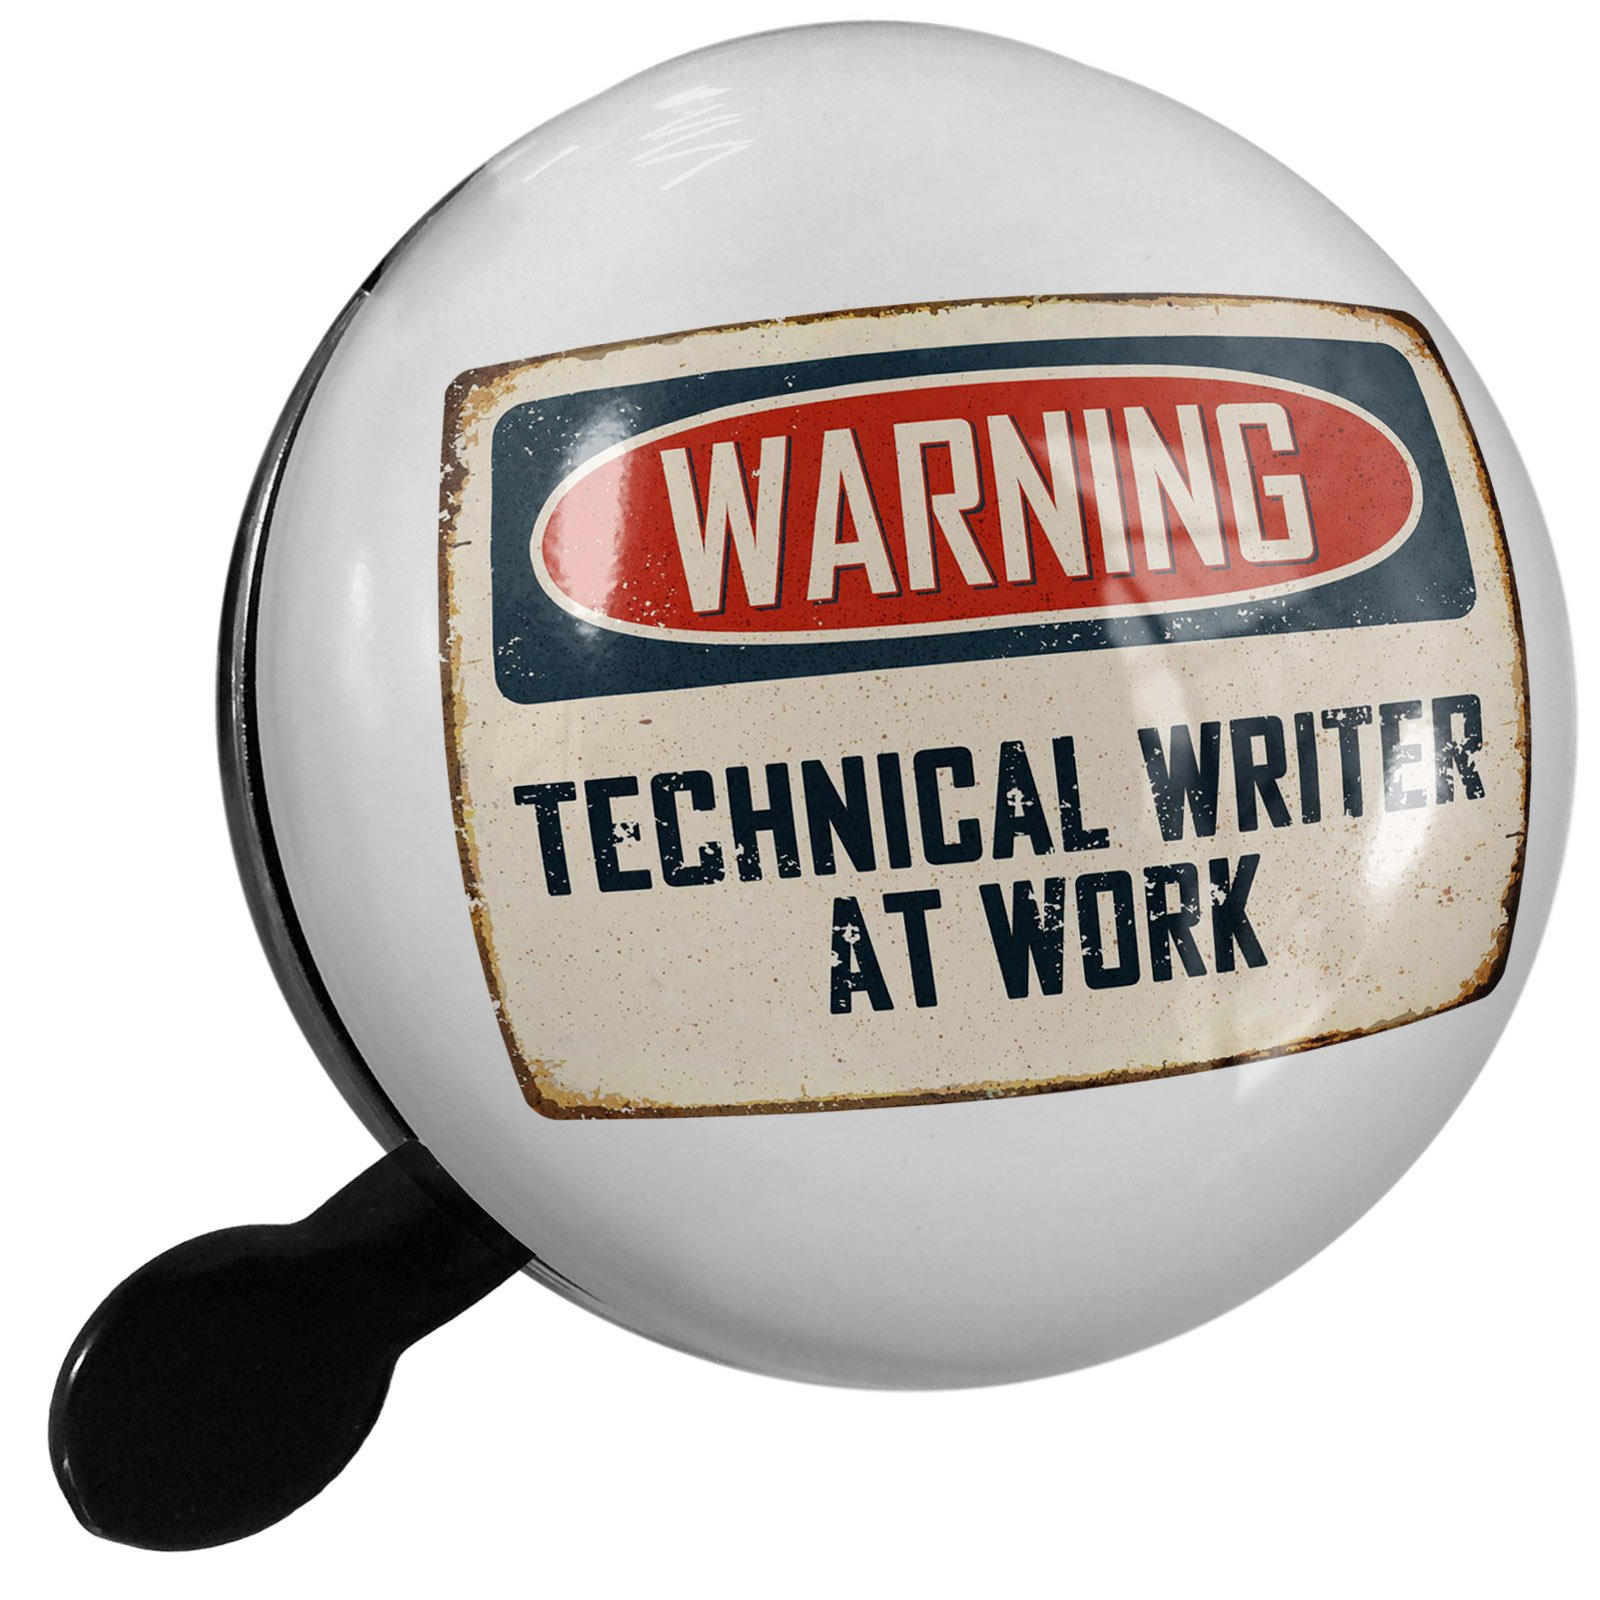 Small Bike Bell Warning Technical Writer At Work Vintage Fun Job Sign - NEONBLOND